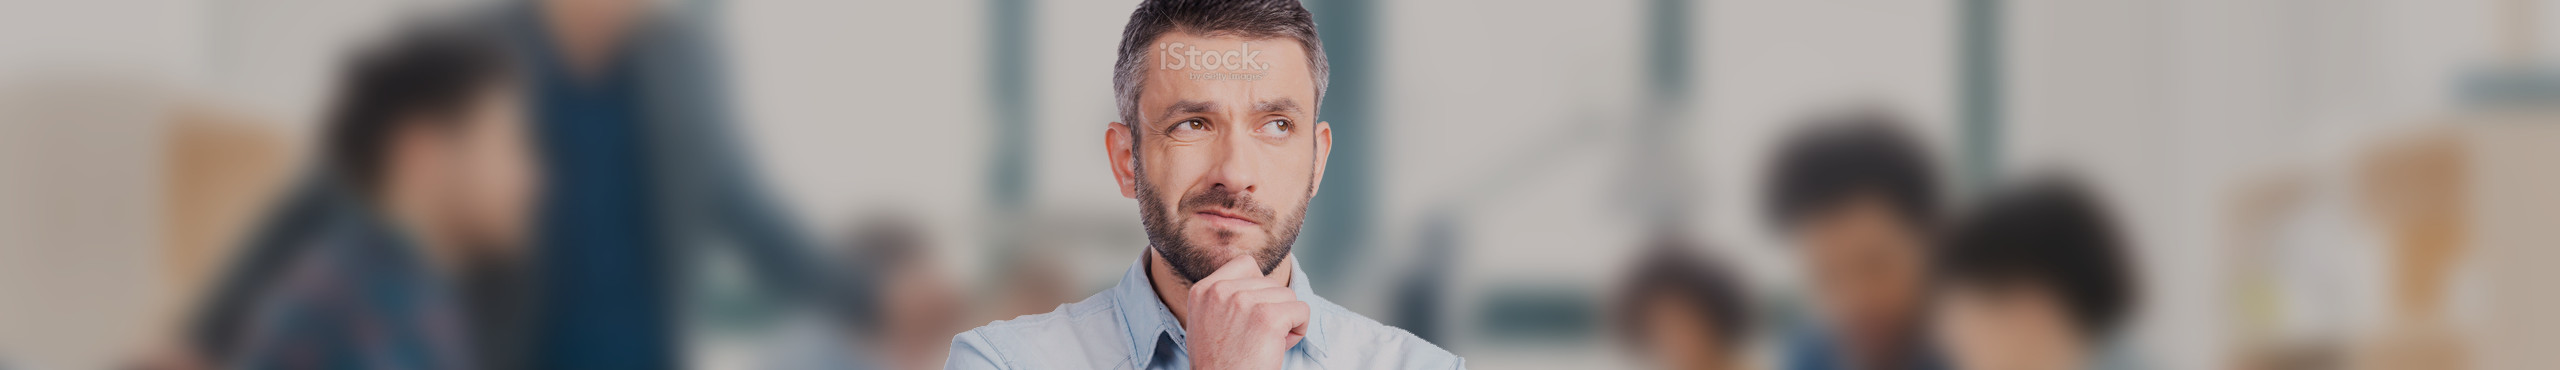 Man with beard in office with fist on chin thinking about questions